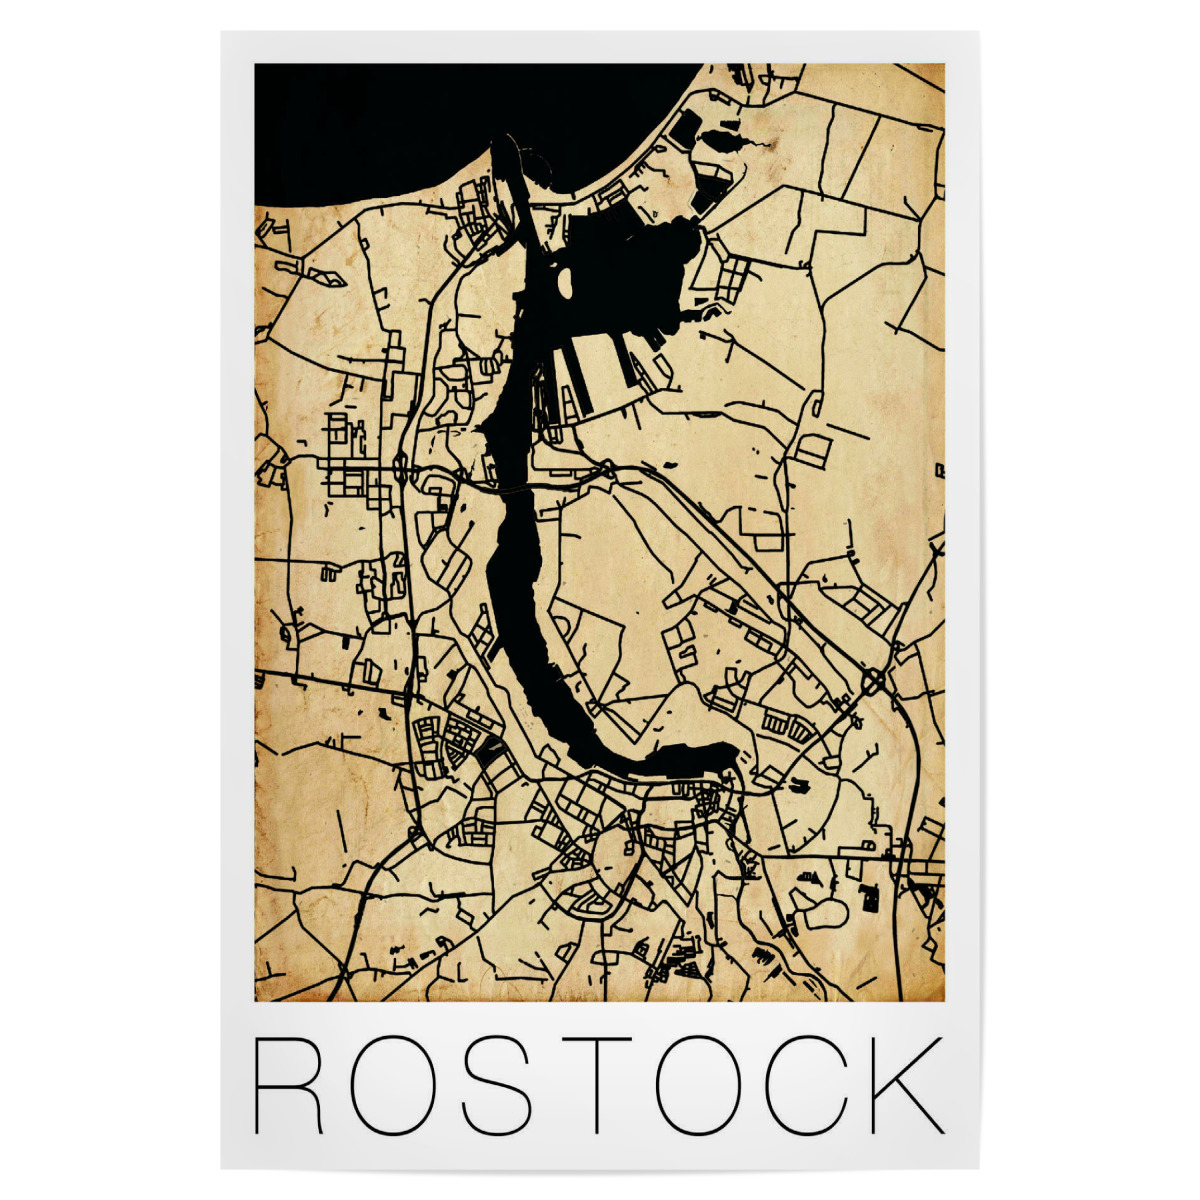 Purchase The Retro Map Of Rostock Germany As A Poster At Artboxone